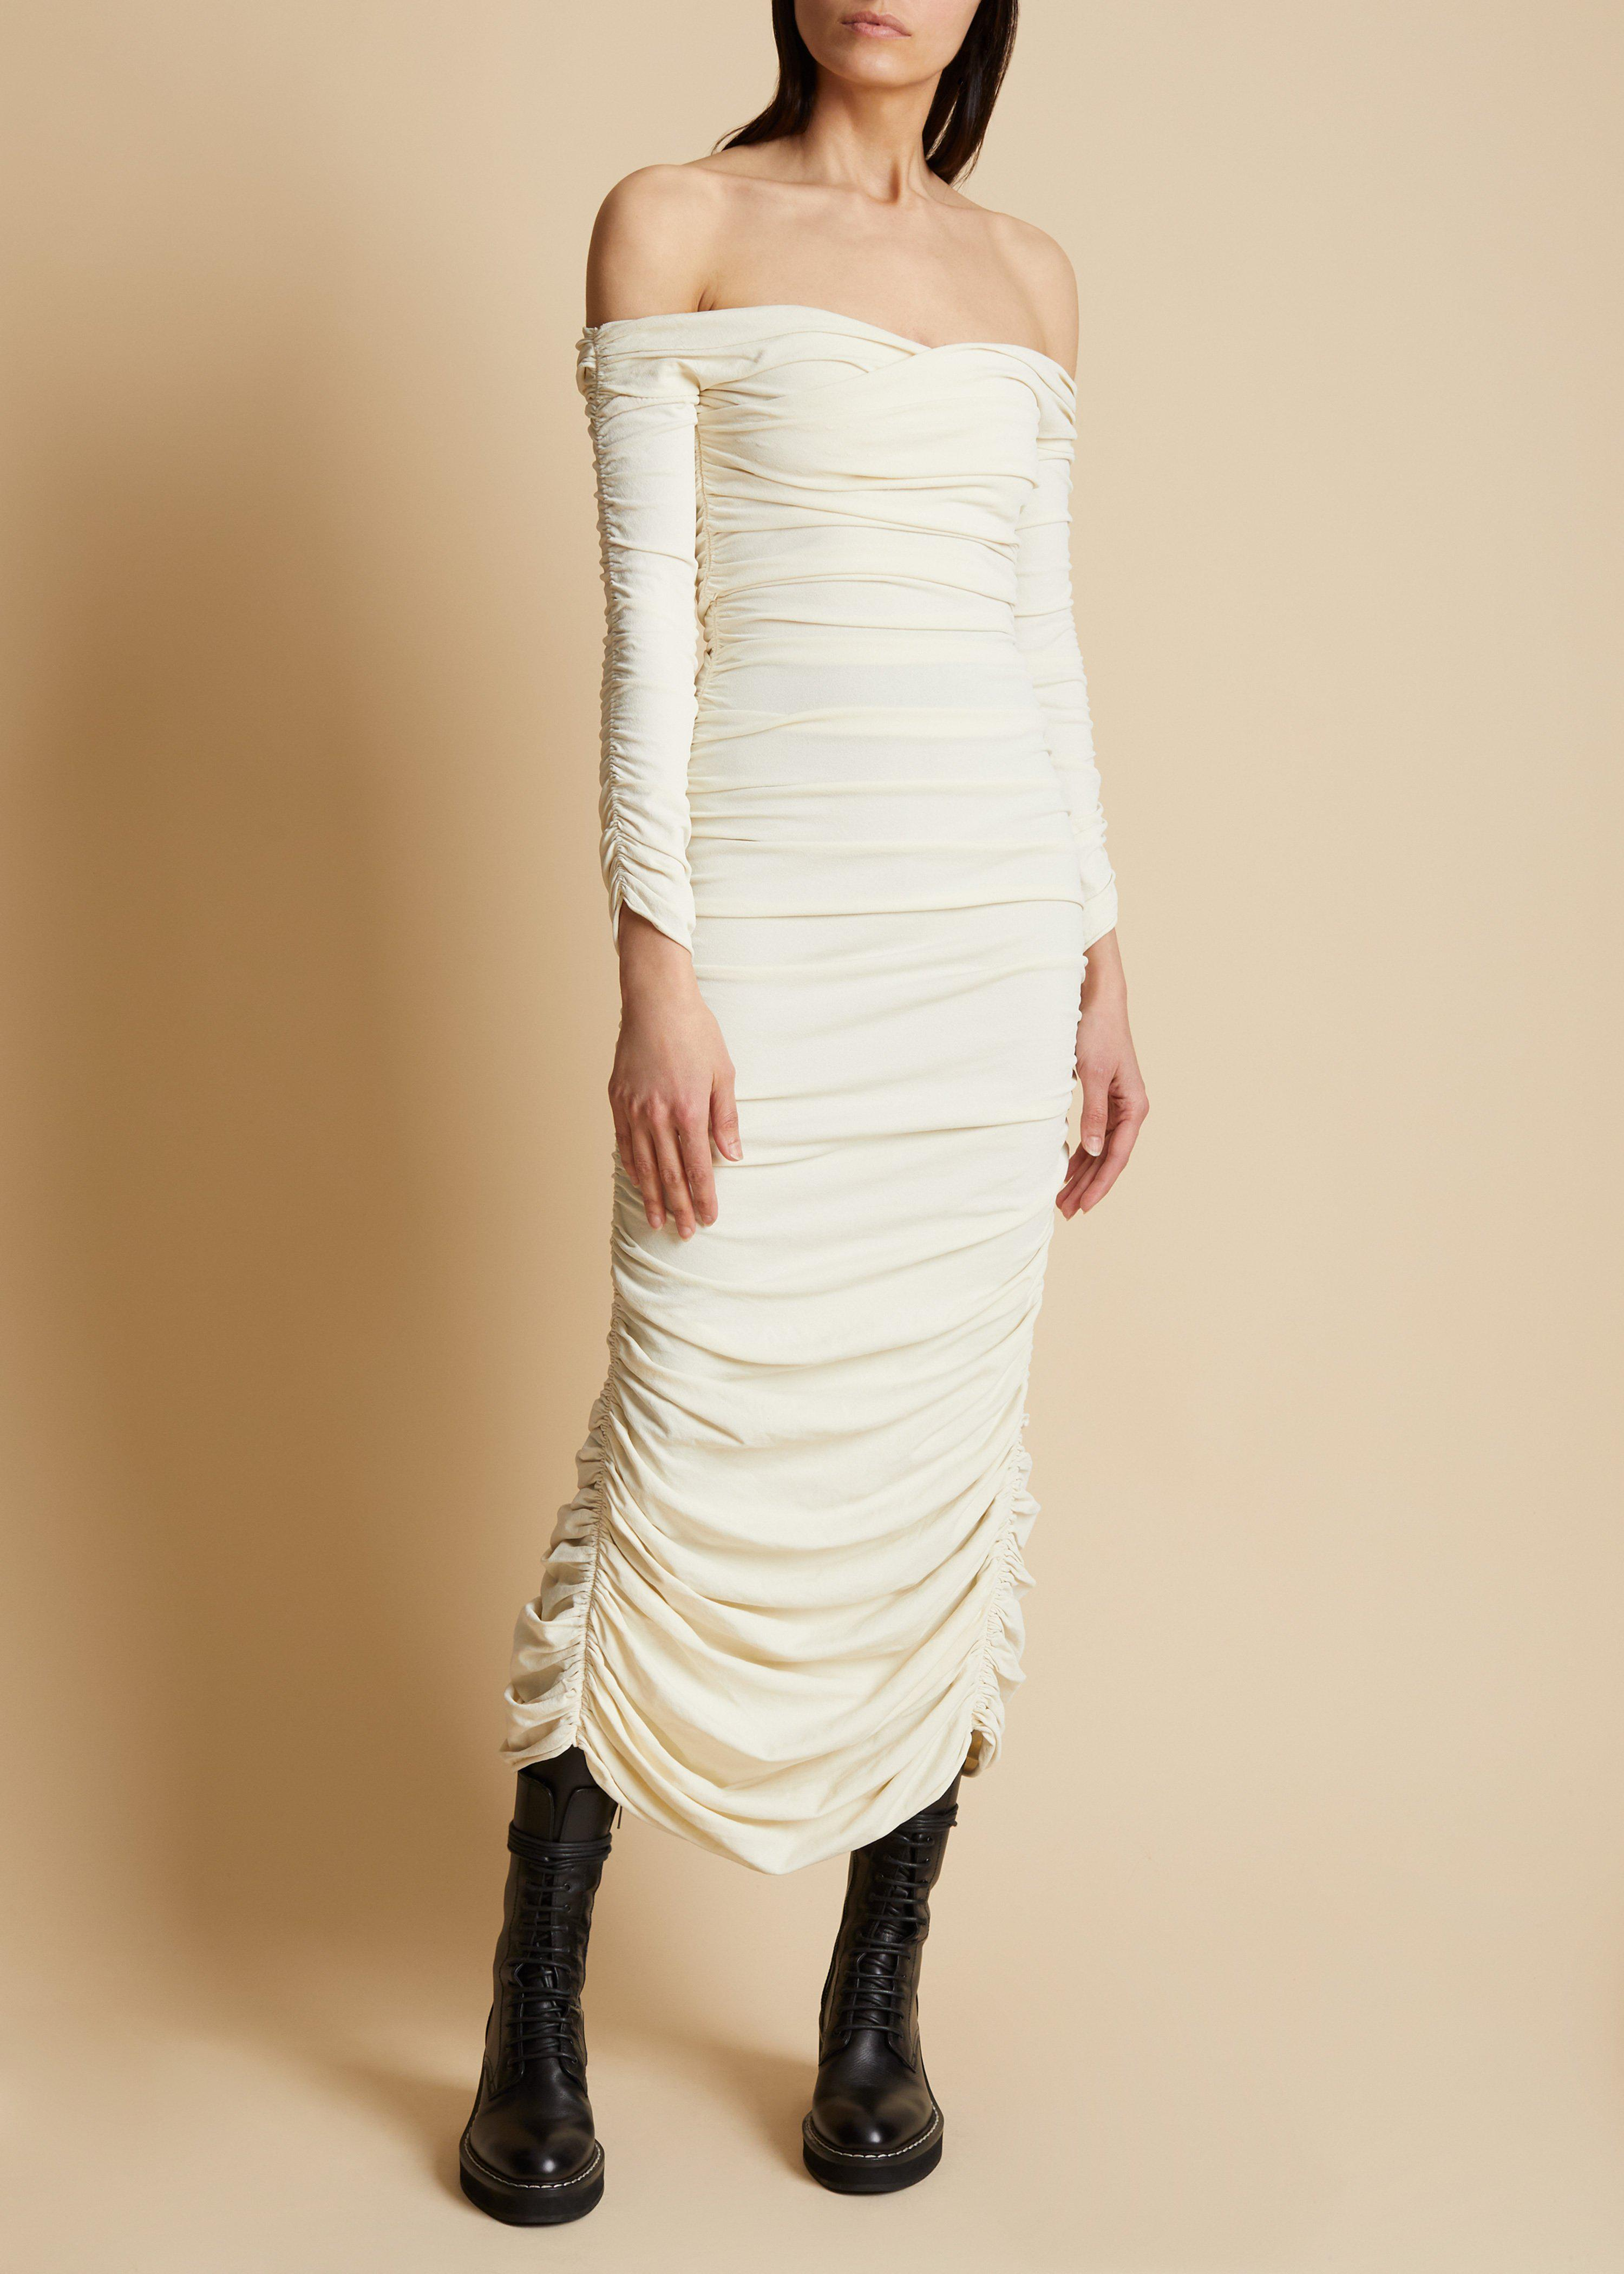 The Lydia Dress in Ivory